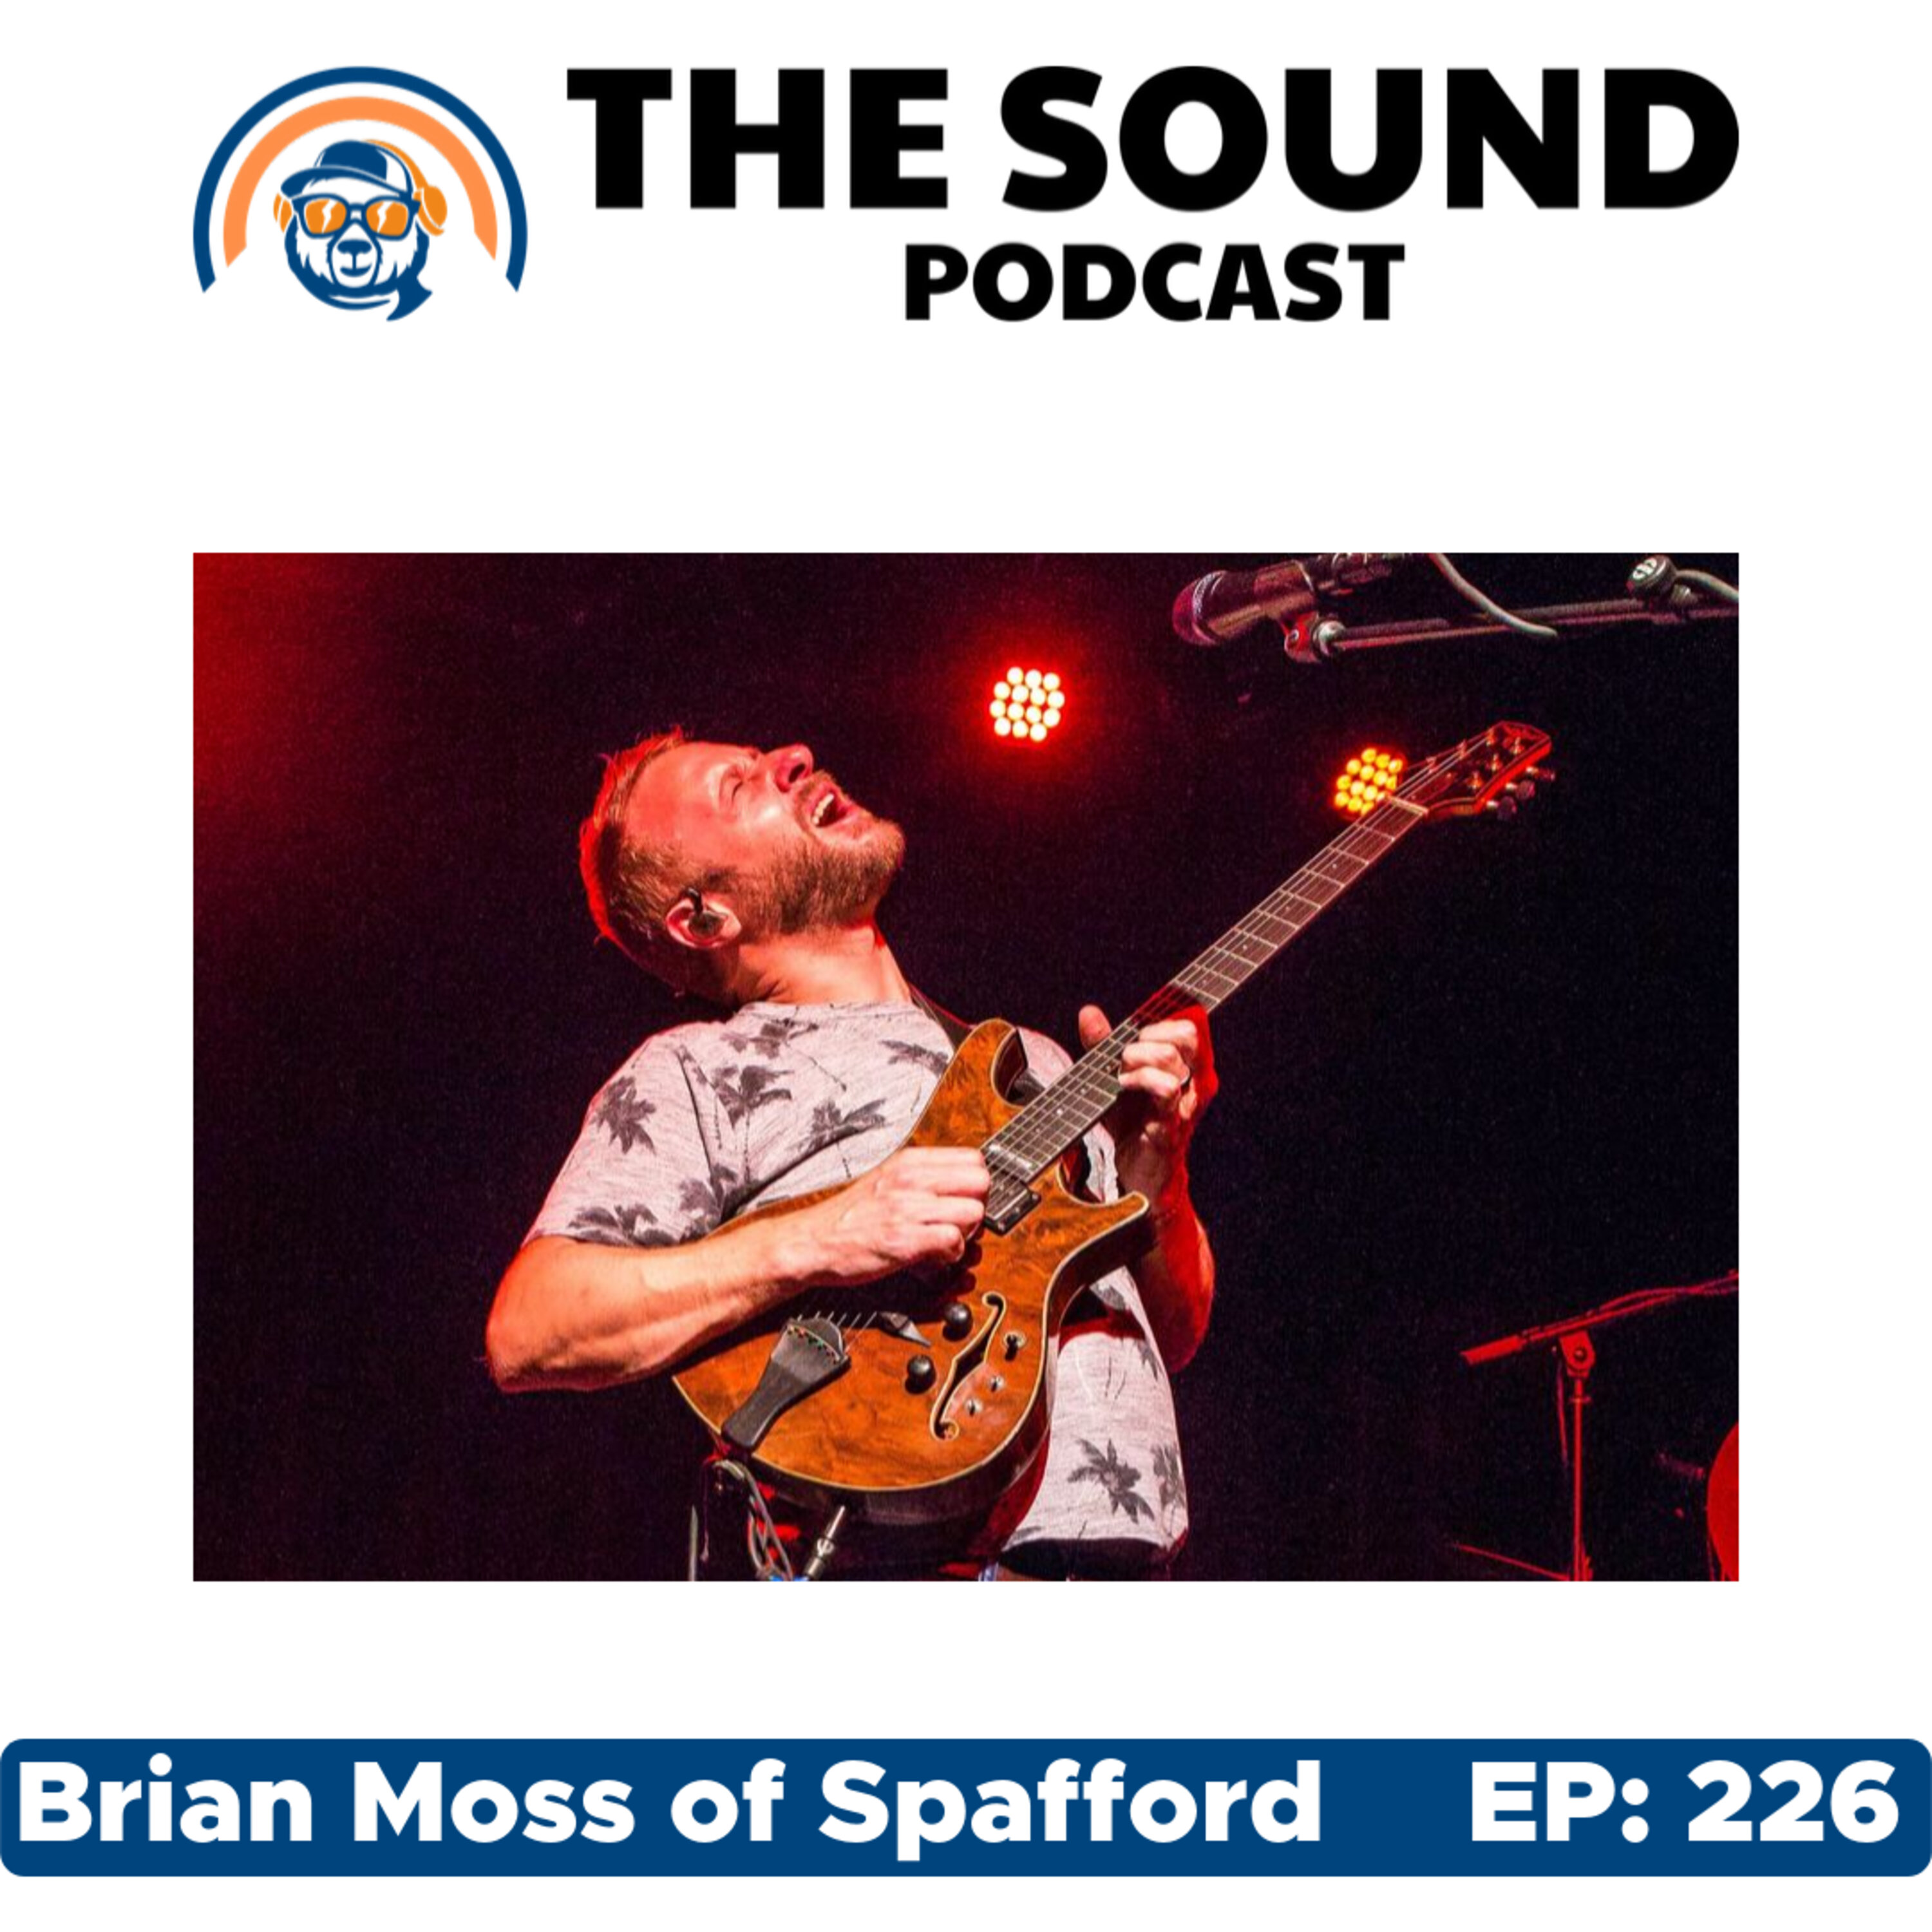 Brian Moss of Spafford